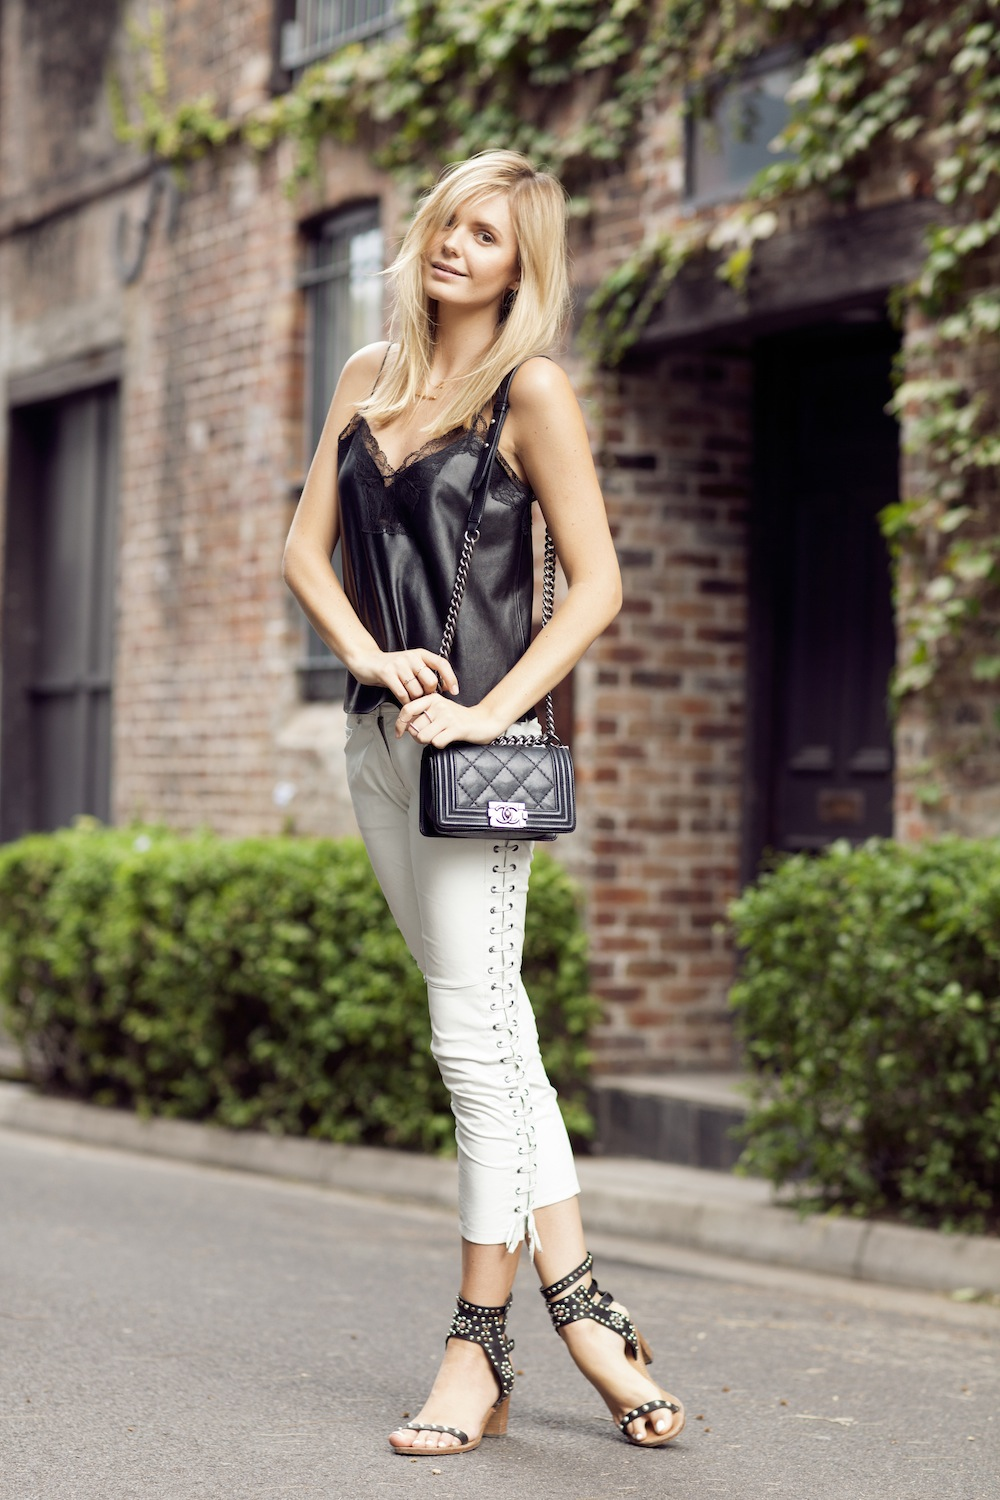 Leather Leggings The Trend Continues In 2014 Just The